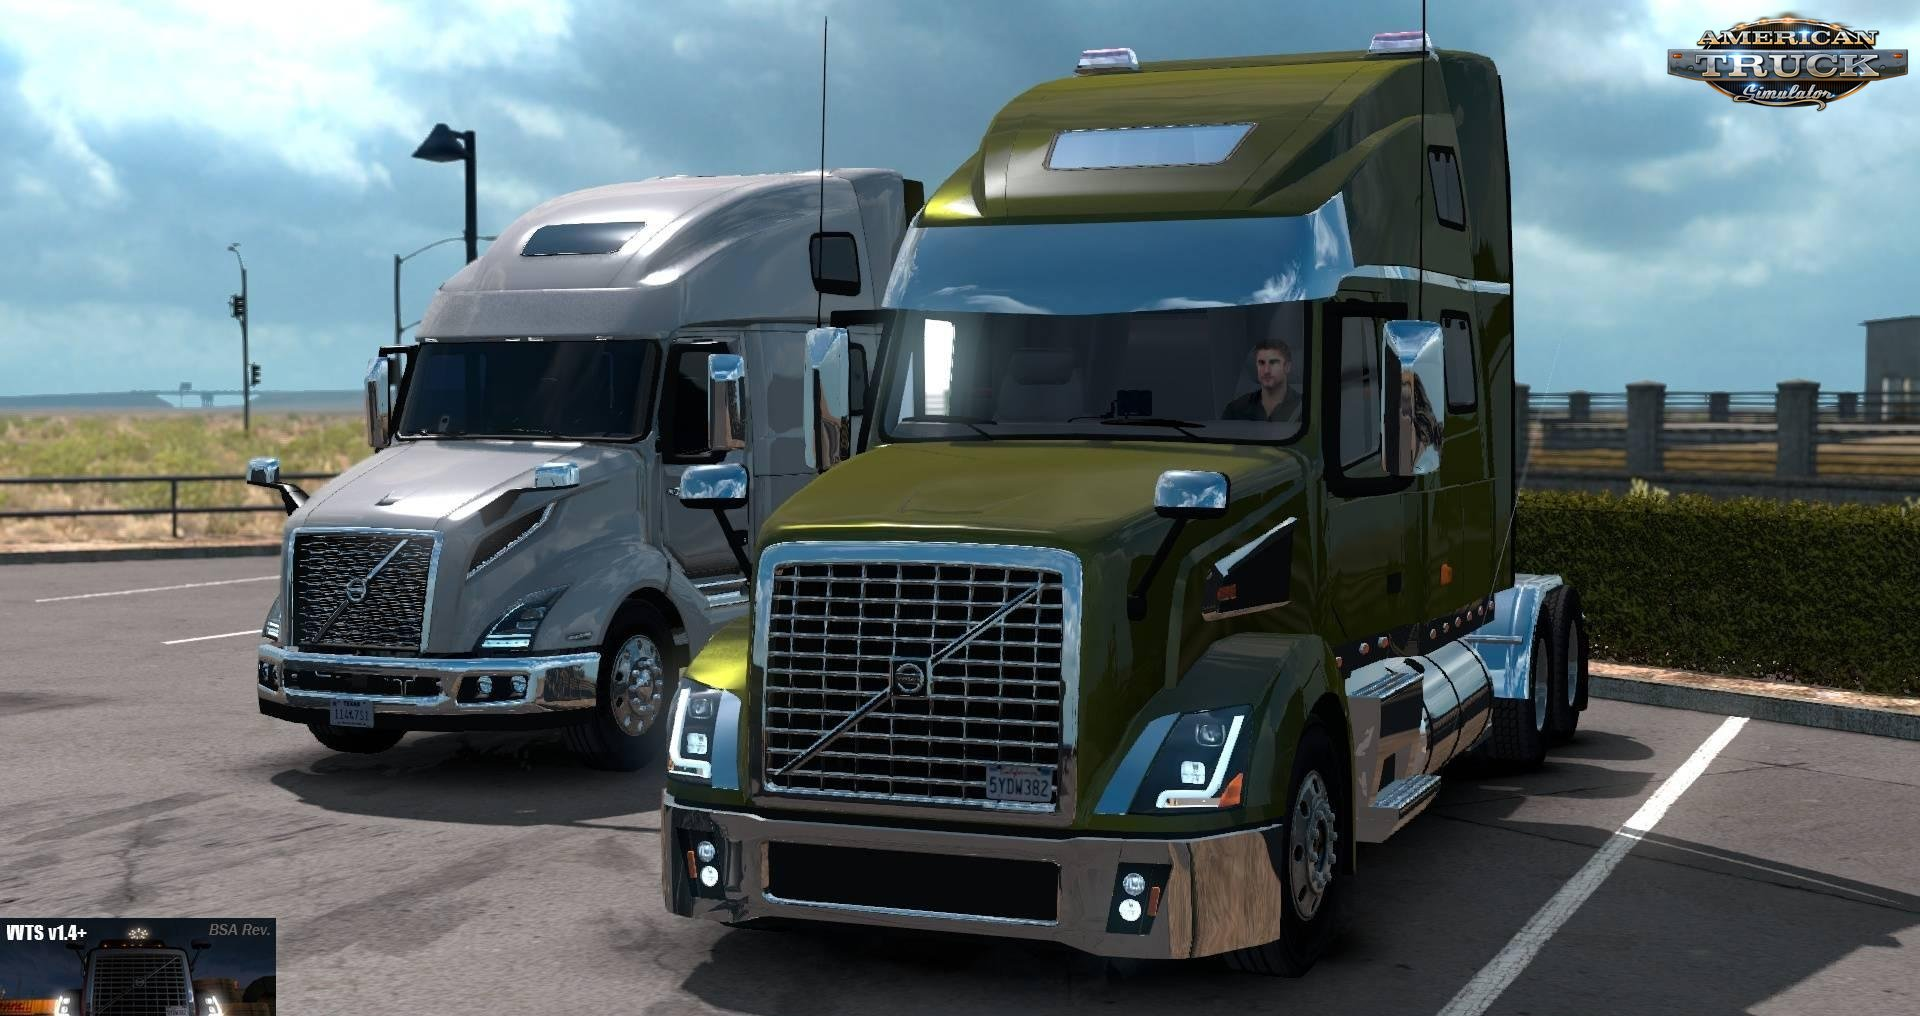 Volvo VNL Truck Shop v1.4+ (BSA Revision) (1.35.x) for ATS